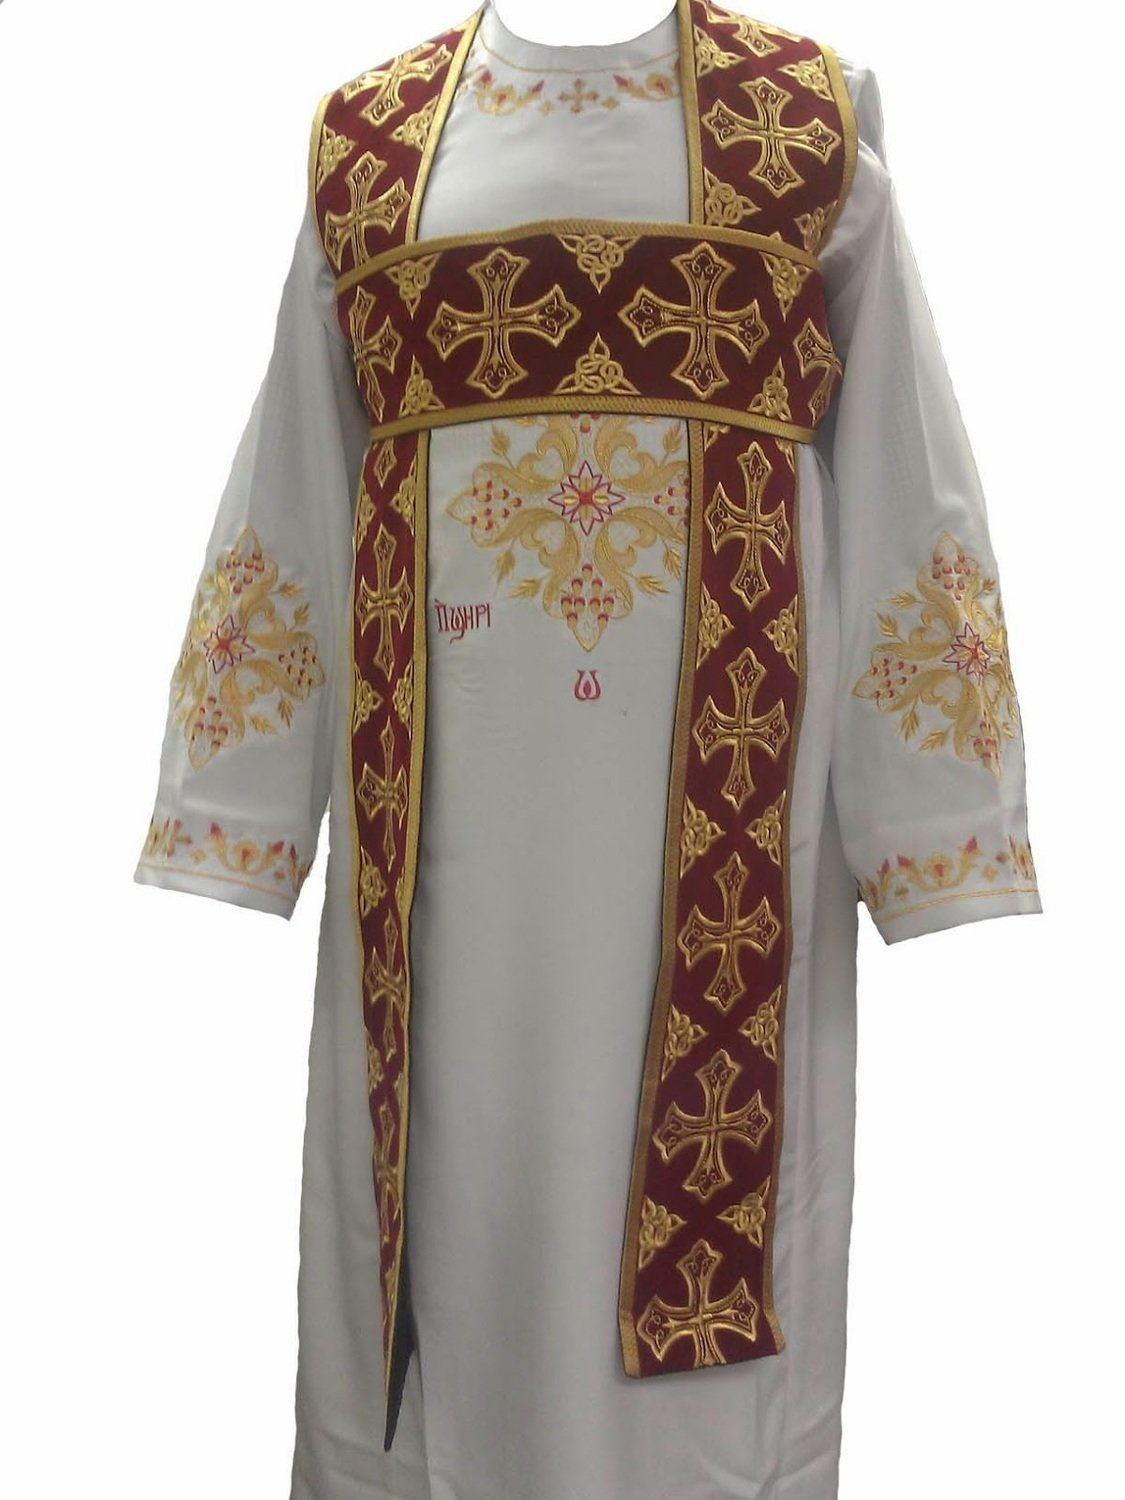 Coptic Church Deacon's Embroidery Stole (SHAMASS Badrsheel)